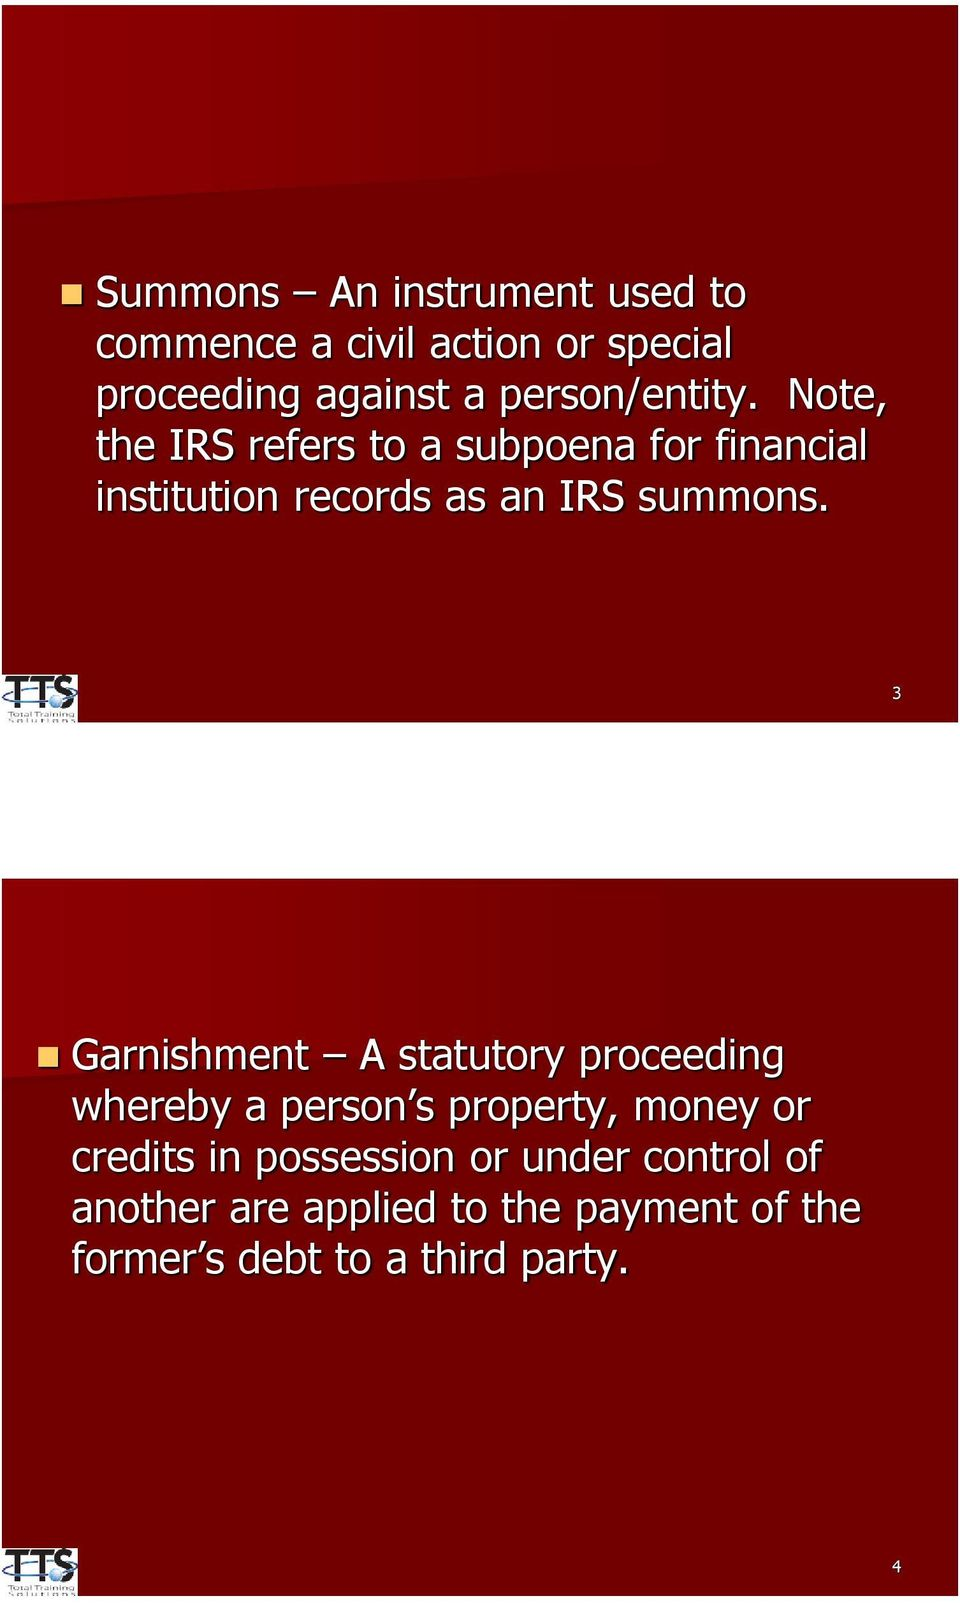 Note, the IRS refers to a subpoena for financial institution records as an IRS summons.